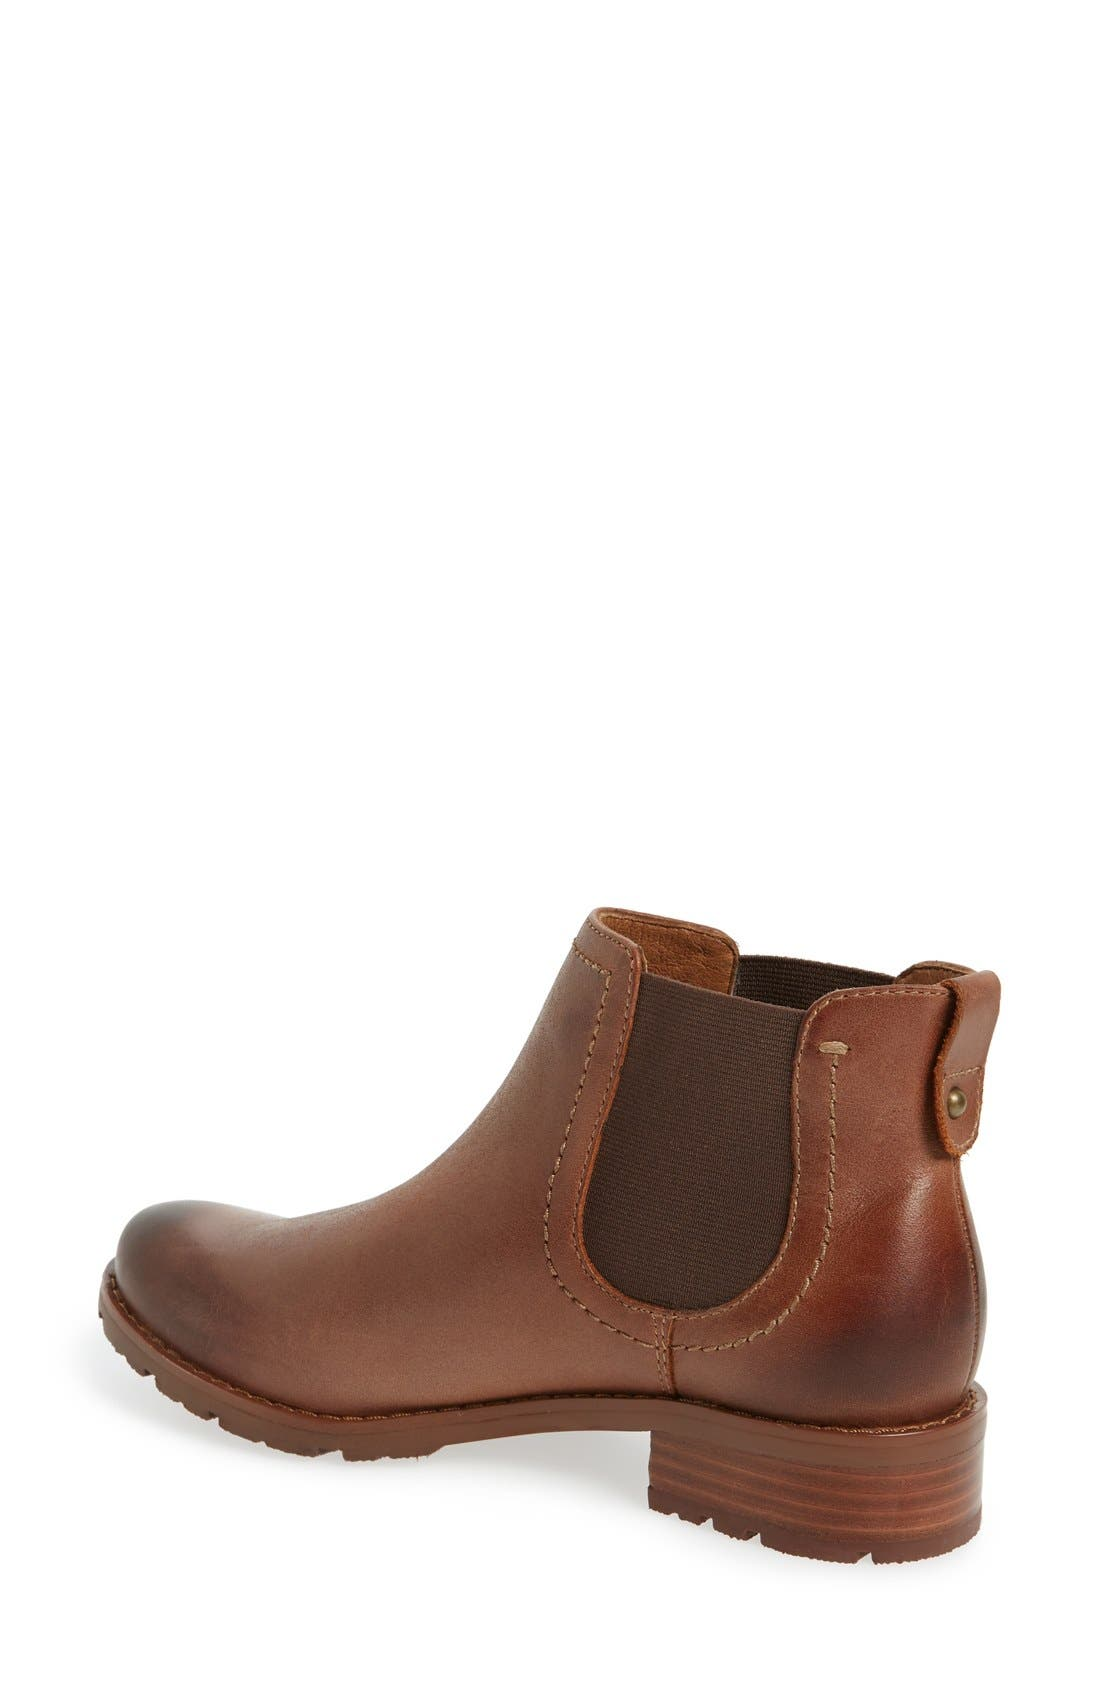 'Selby' Chelsea Bootie,                             Alternate thumbnail 19, color,